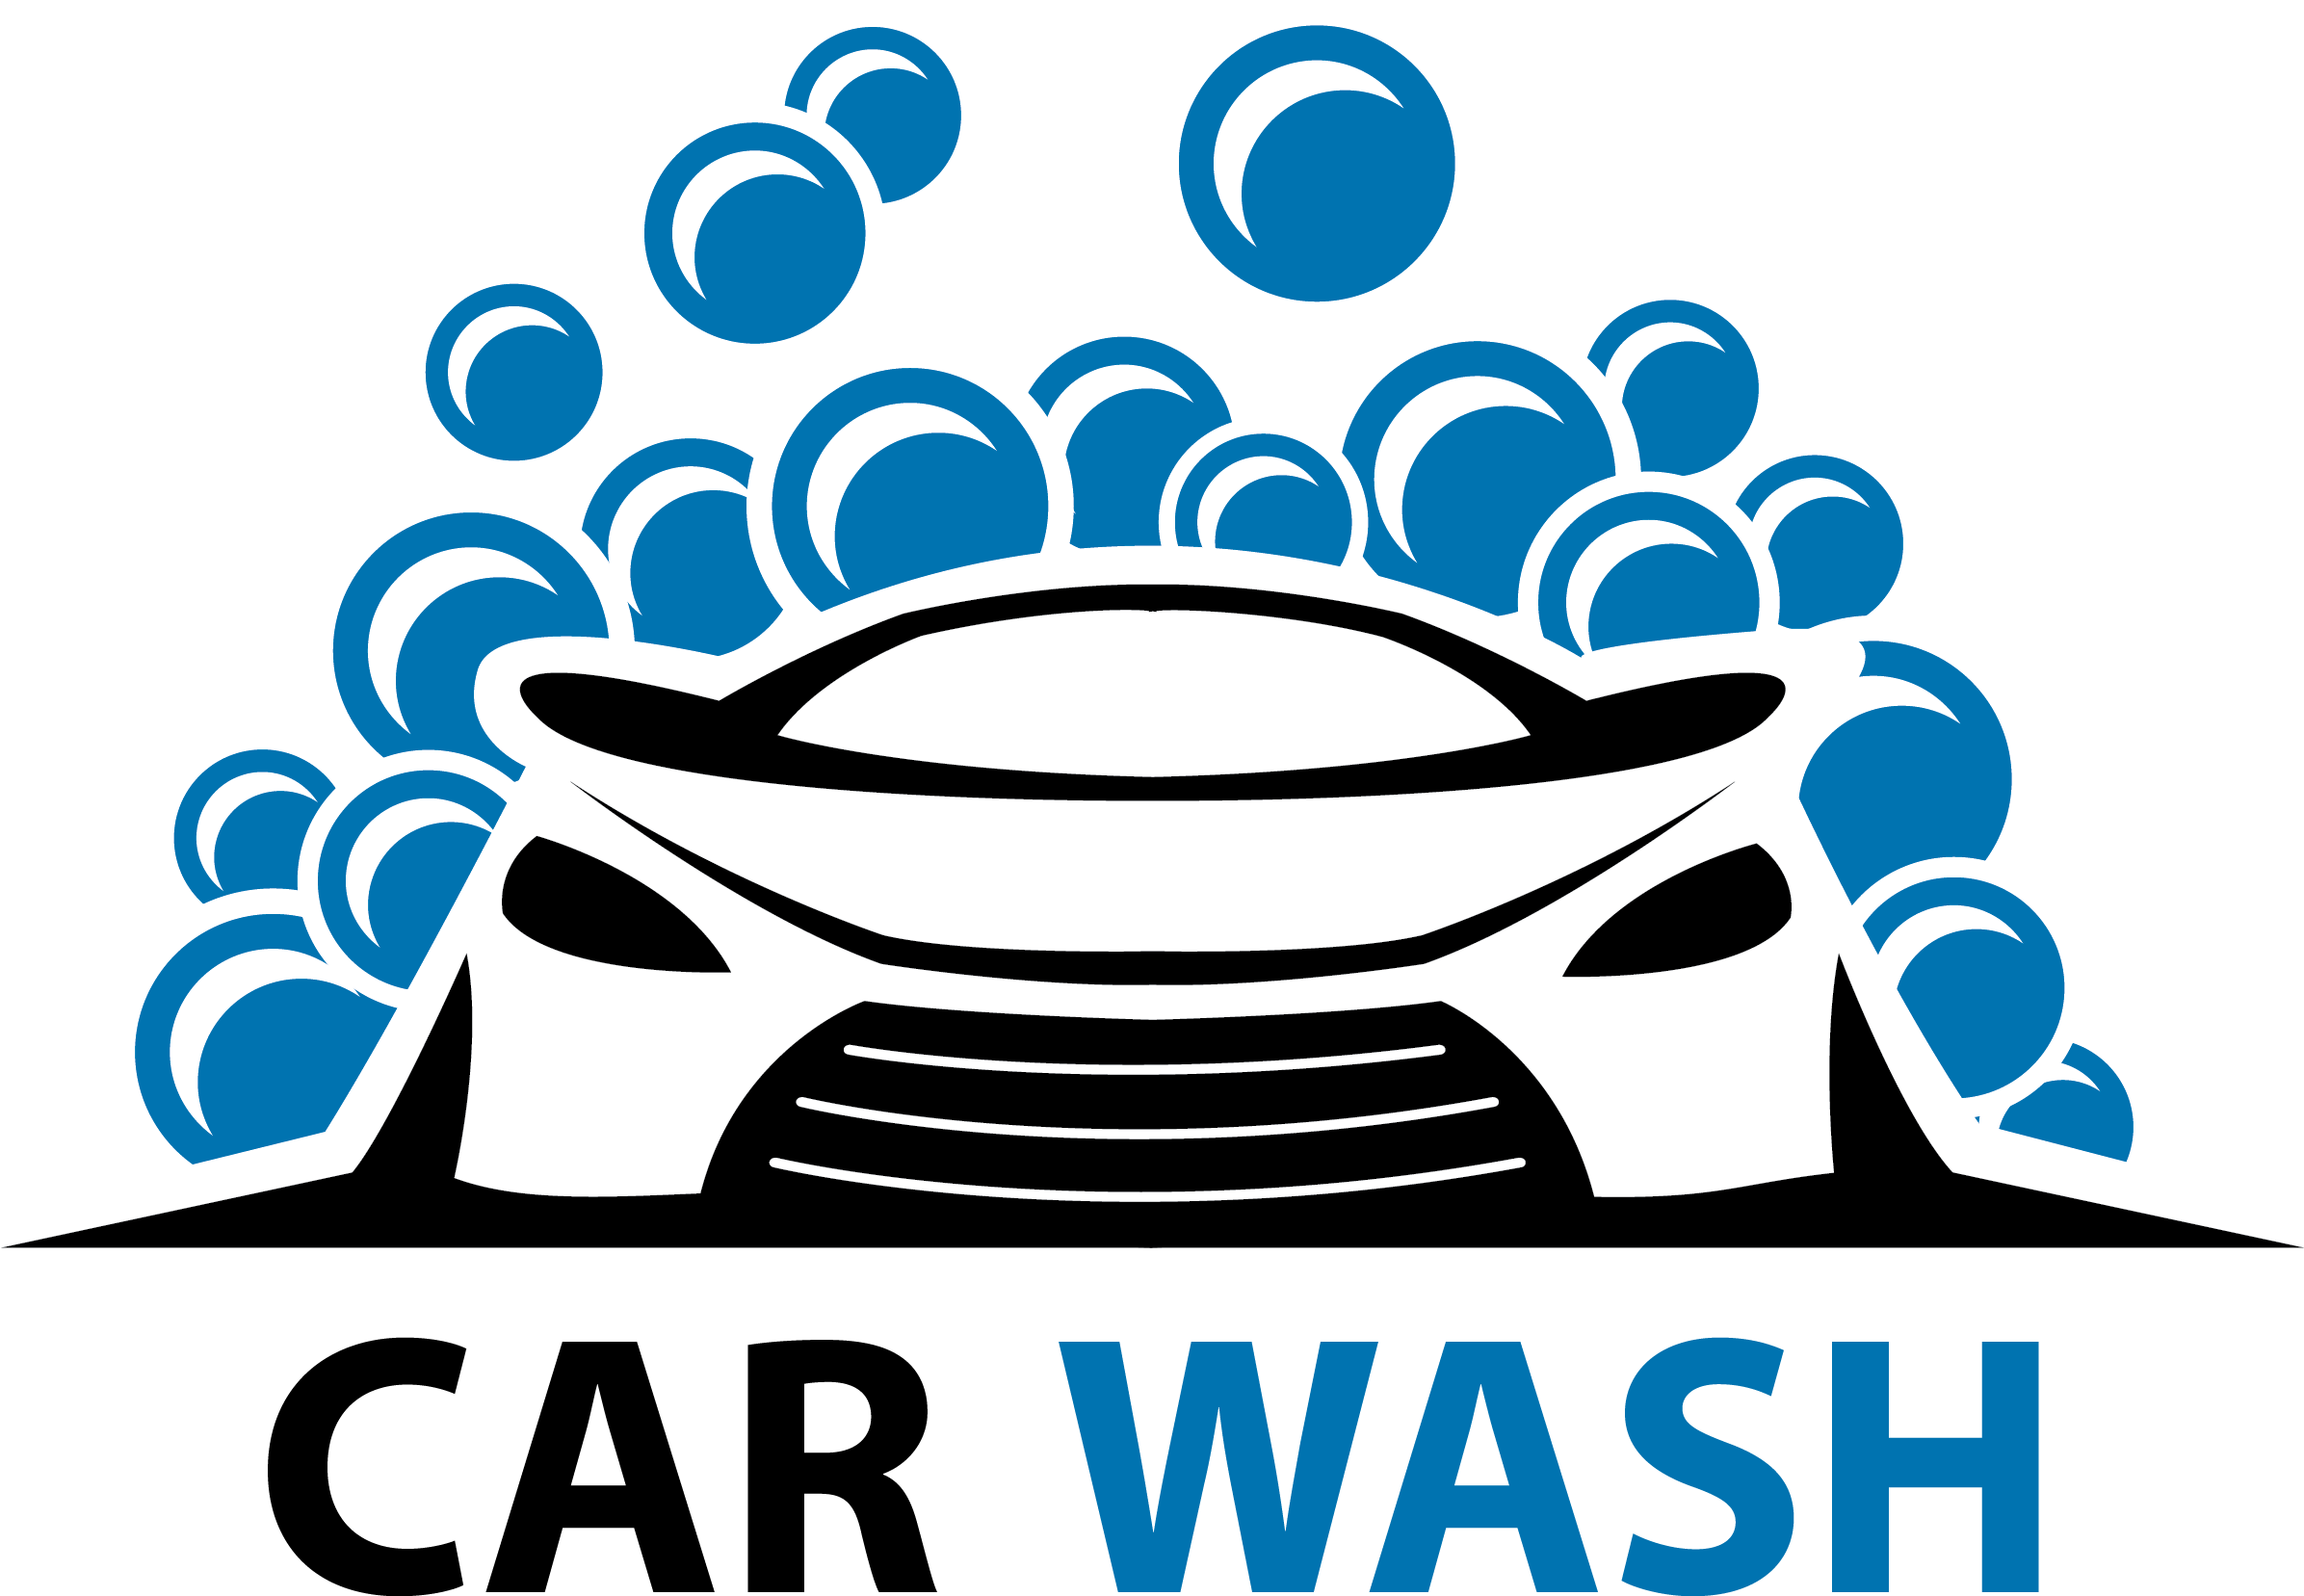 Car wash hose clipart clipart black and white stock Car Wash | Maple Grove BP | Maple Grove, MNMaple Grove BP clipart black and white stock